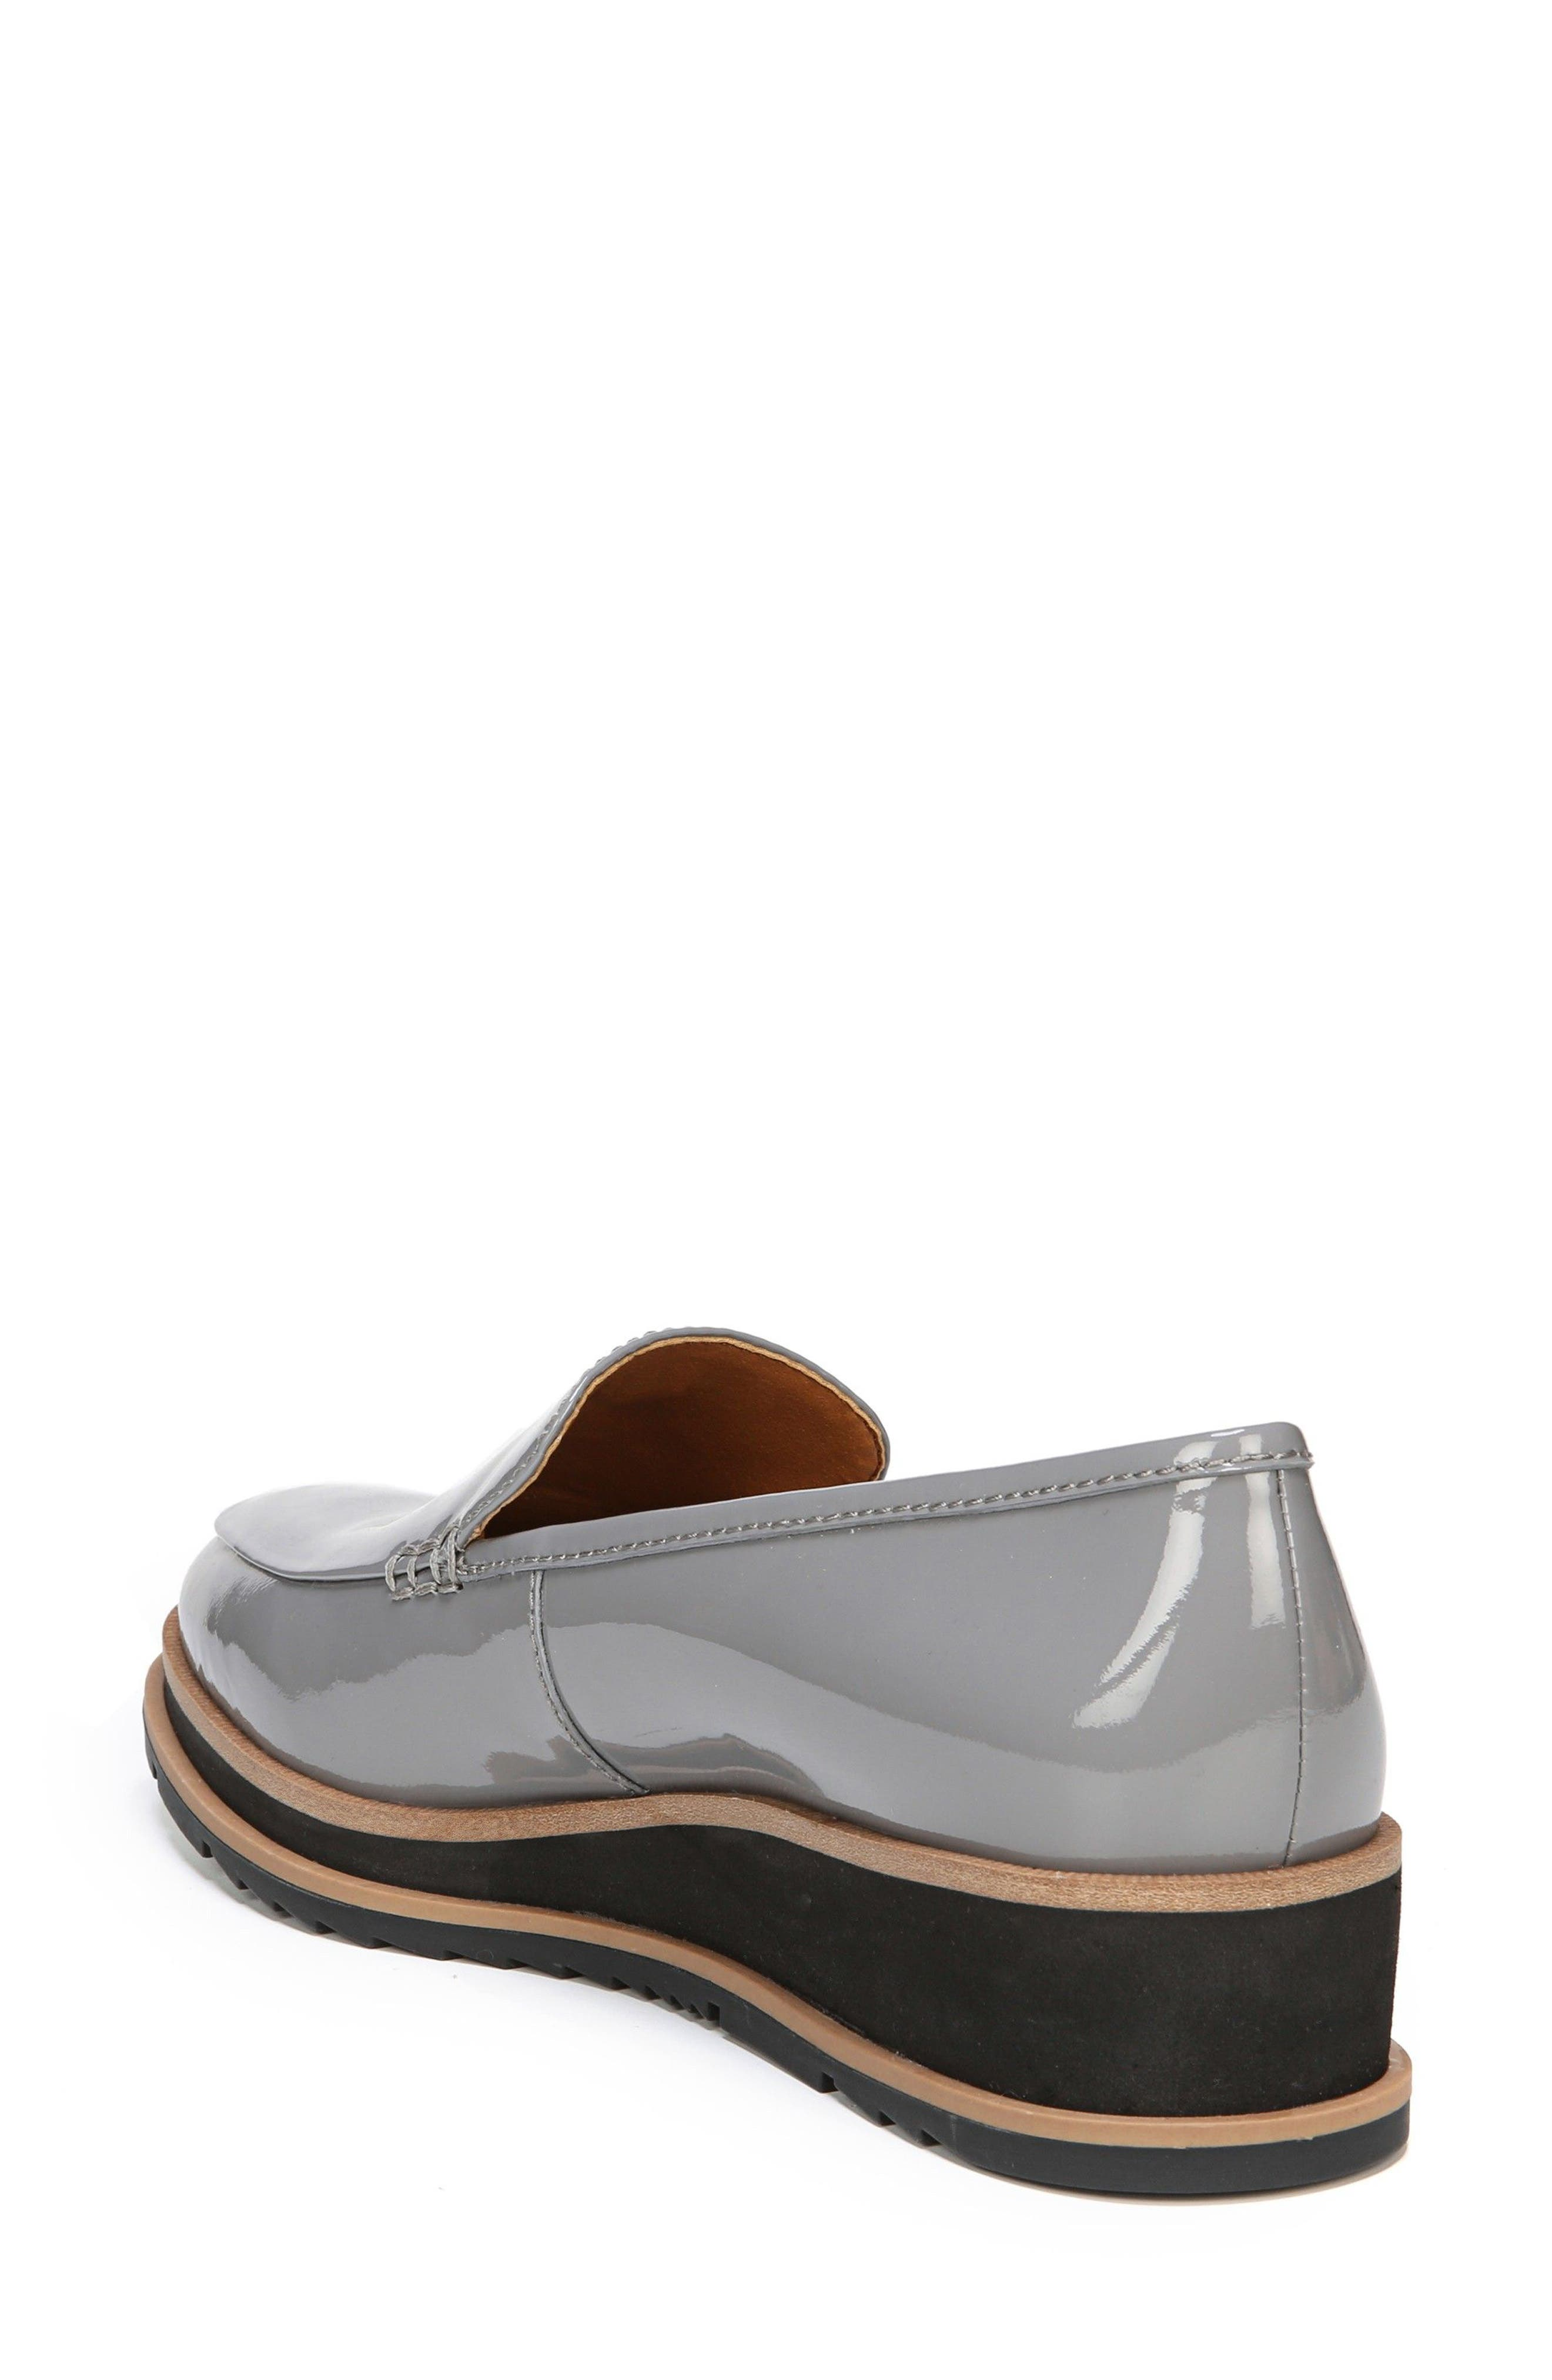 Ayers Loafer Flat,                             Alternate thumbnail 17, color,